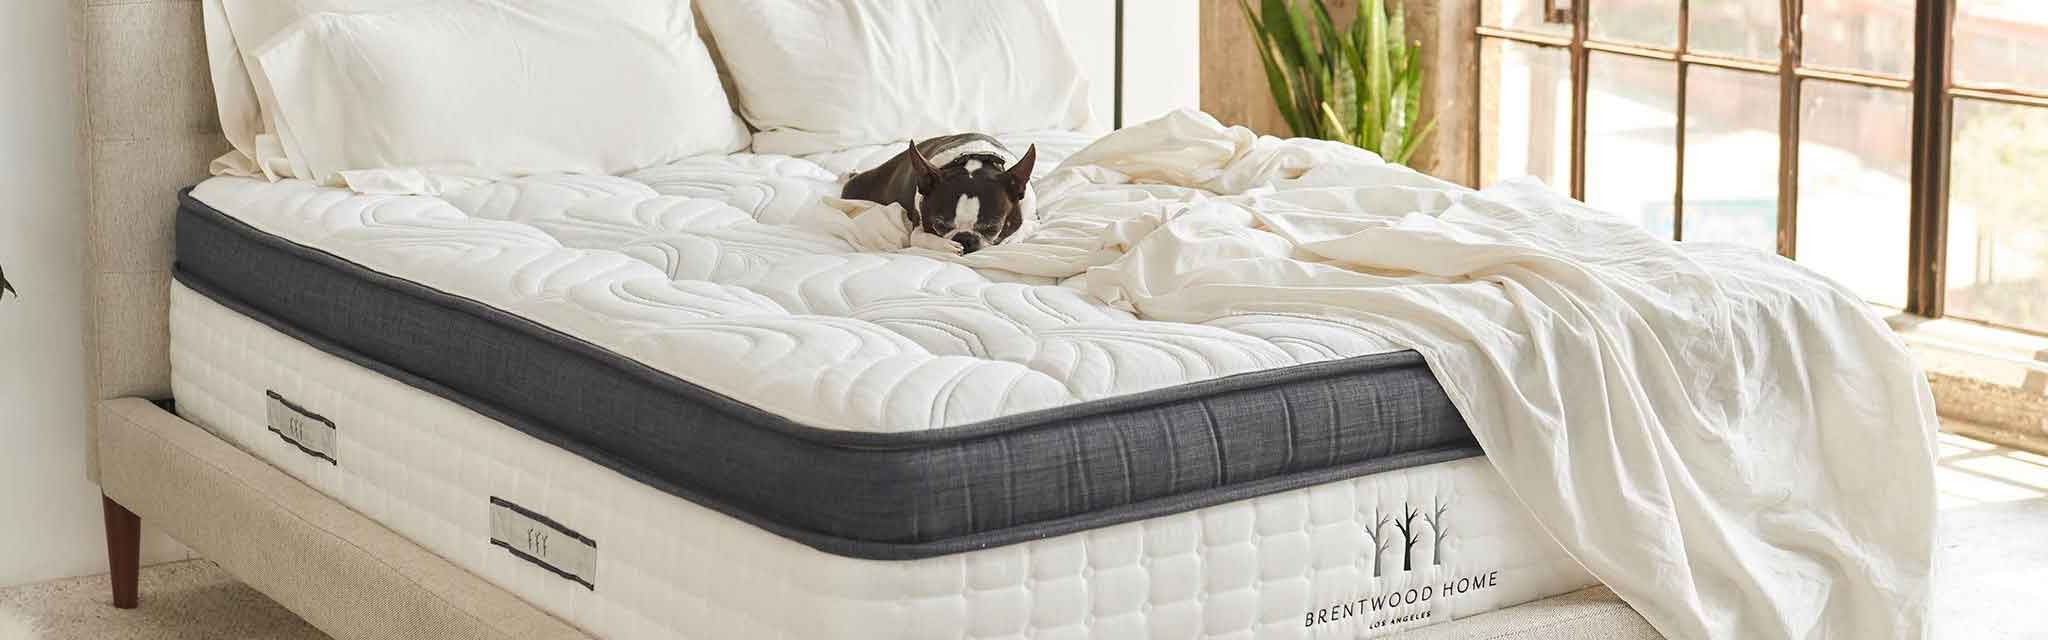 Mattress Brand Reviews >> Costco Mattress Reviews What 2019 Beds To Buy Scams To Avoid